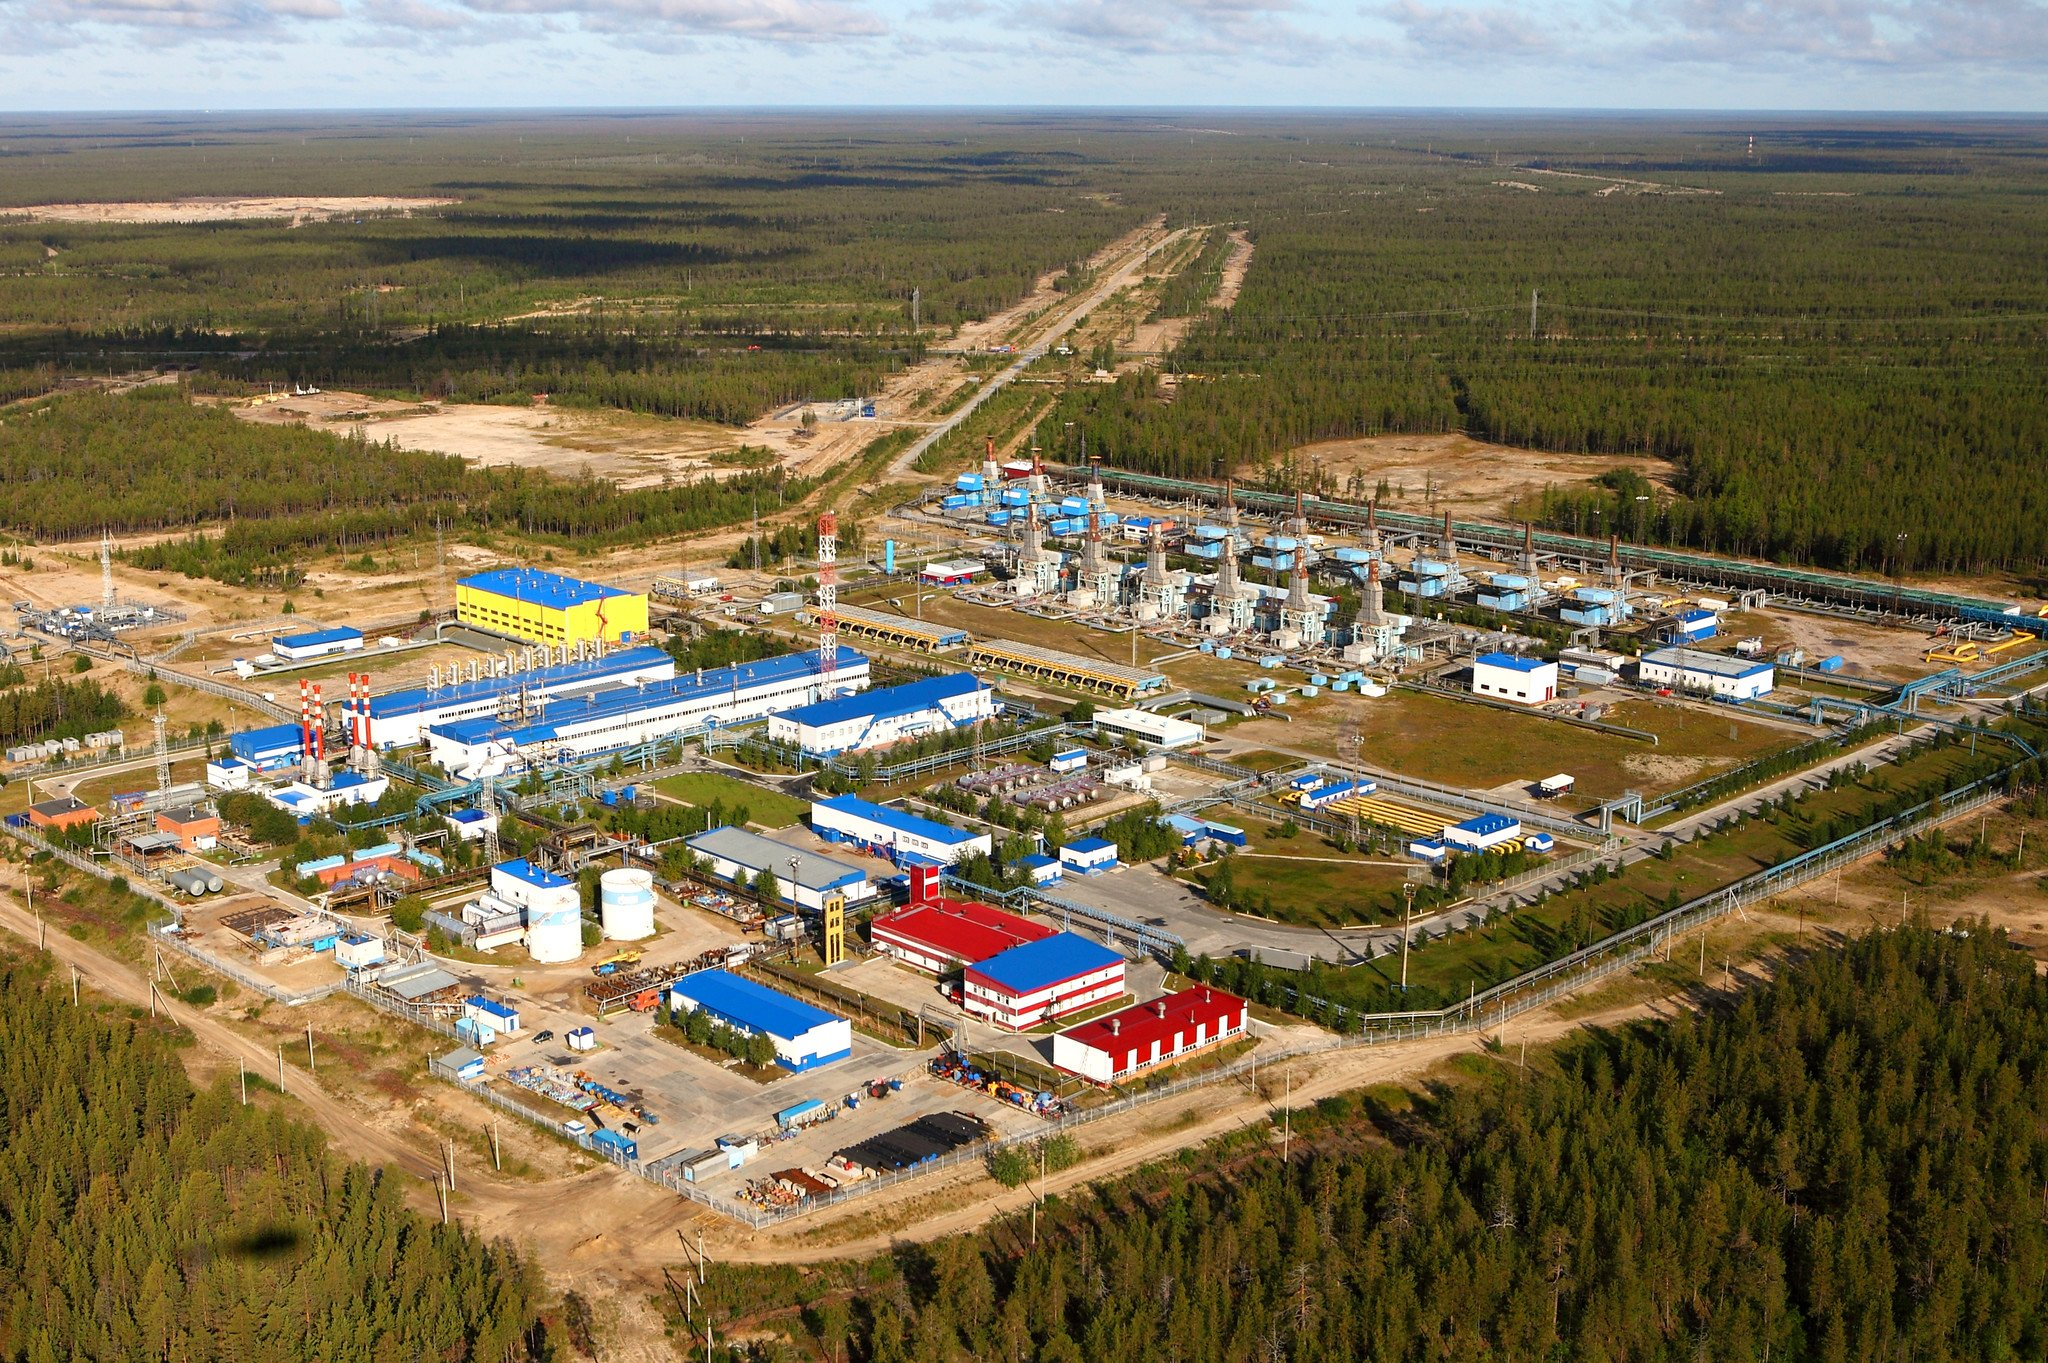 Gazprom will spend 500 million rubles for the reconstruction of fire safety systems of the Komsomolsk gas field